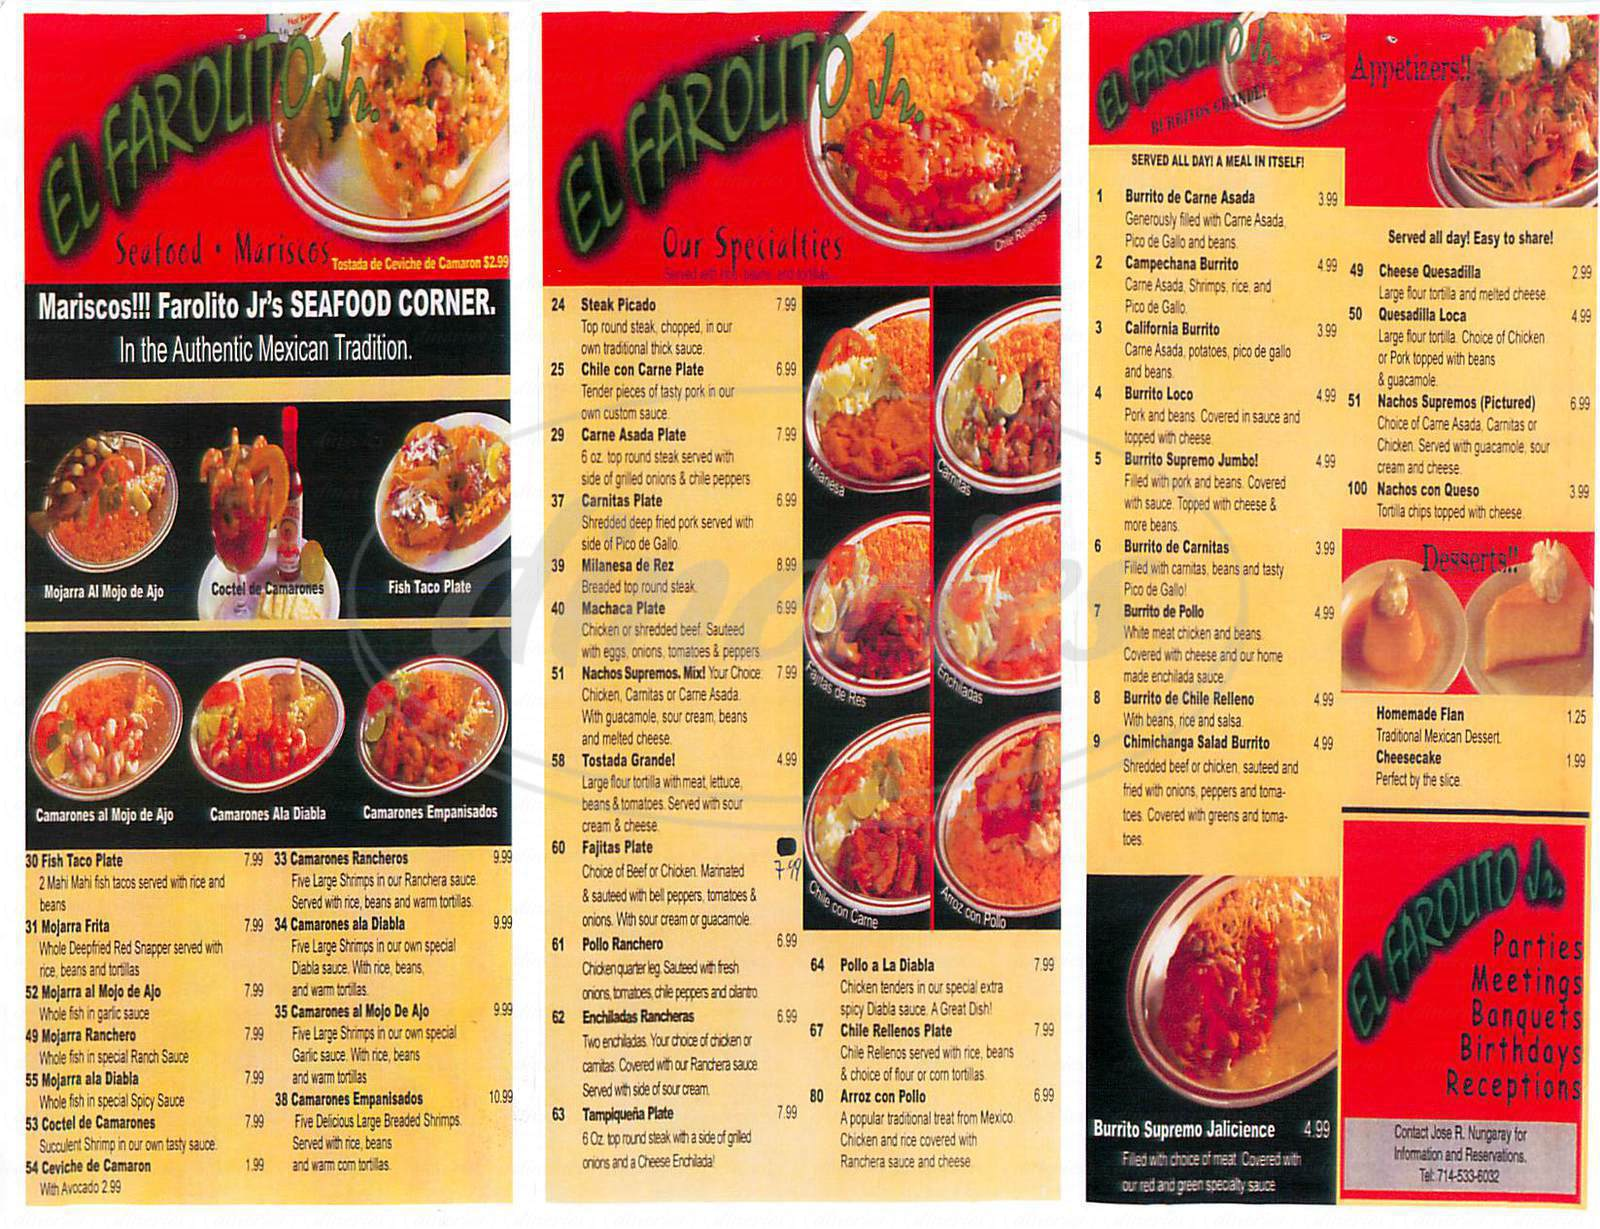 menu for El Farolito Jr